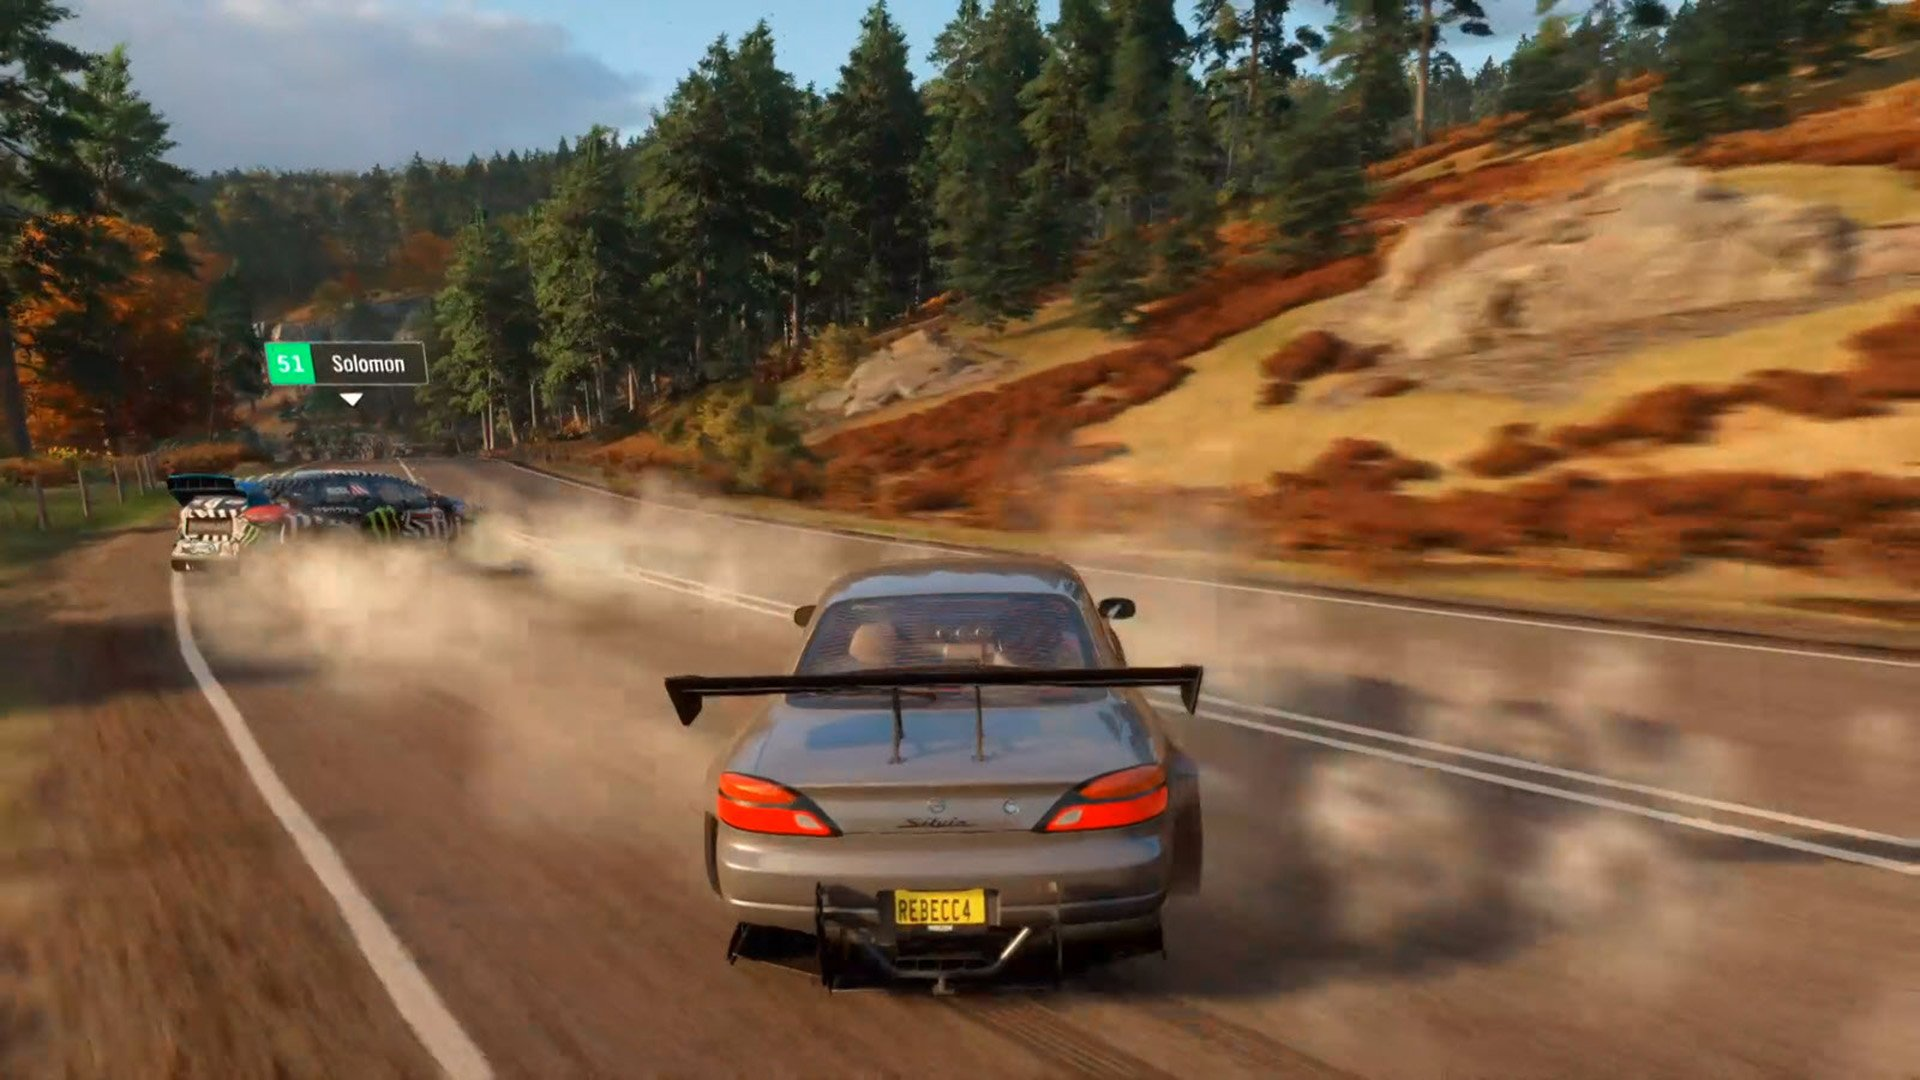 Forza Horizon 4 announced, set in the UK with 60fps!